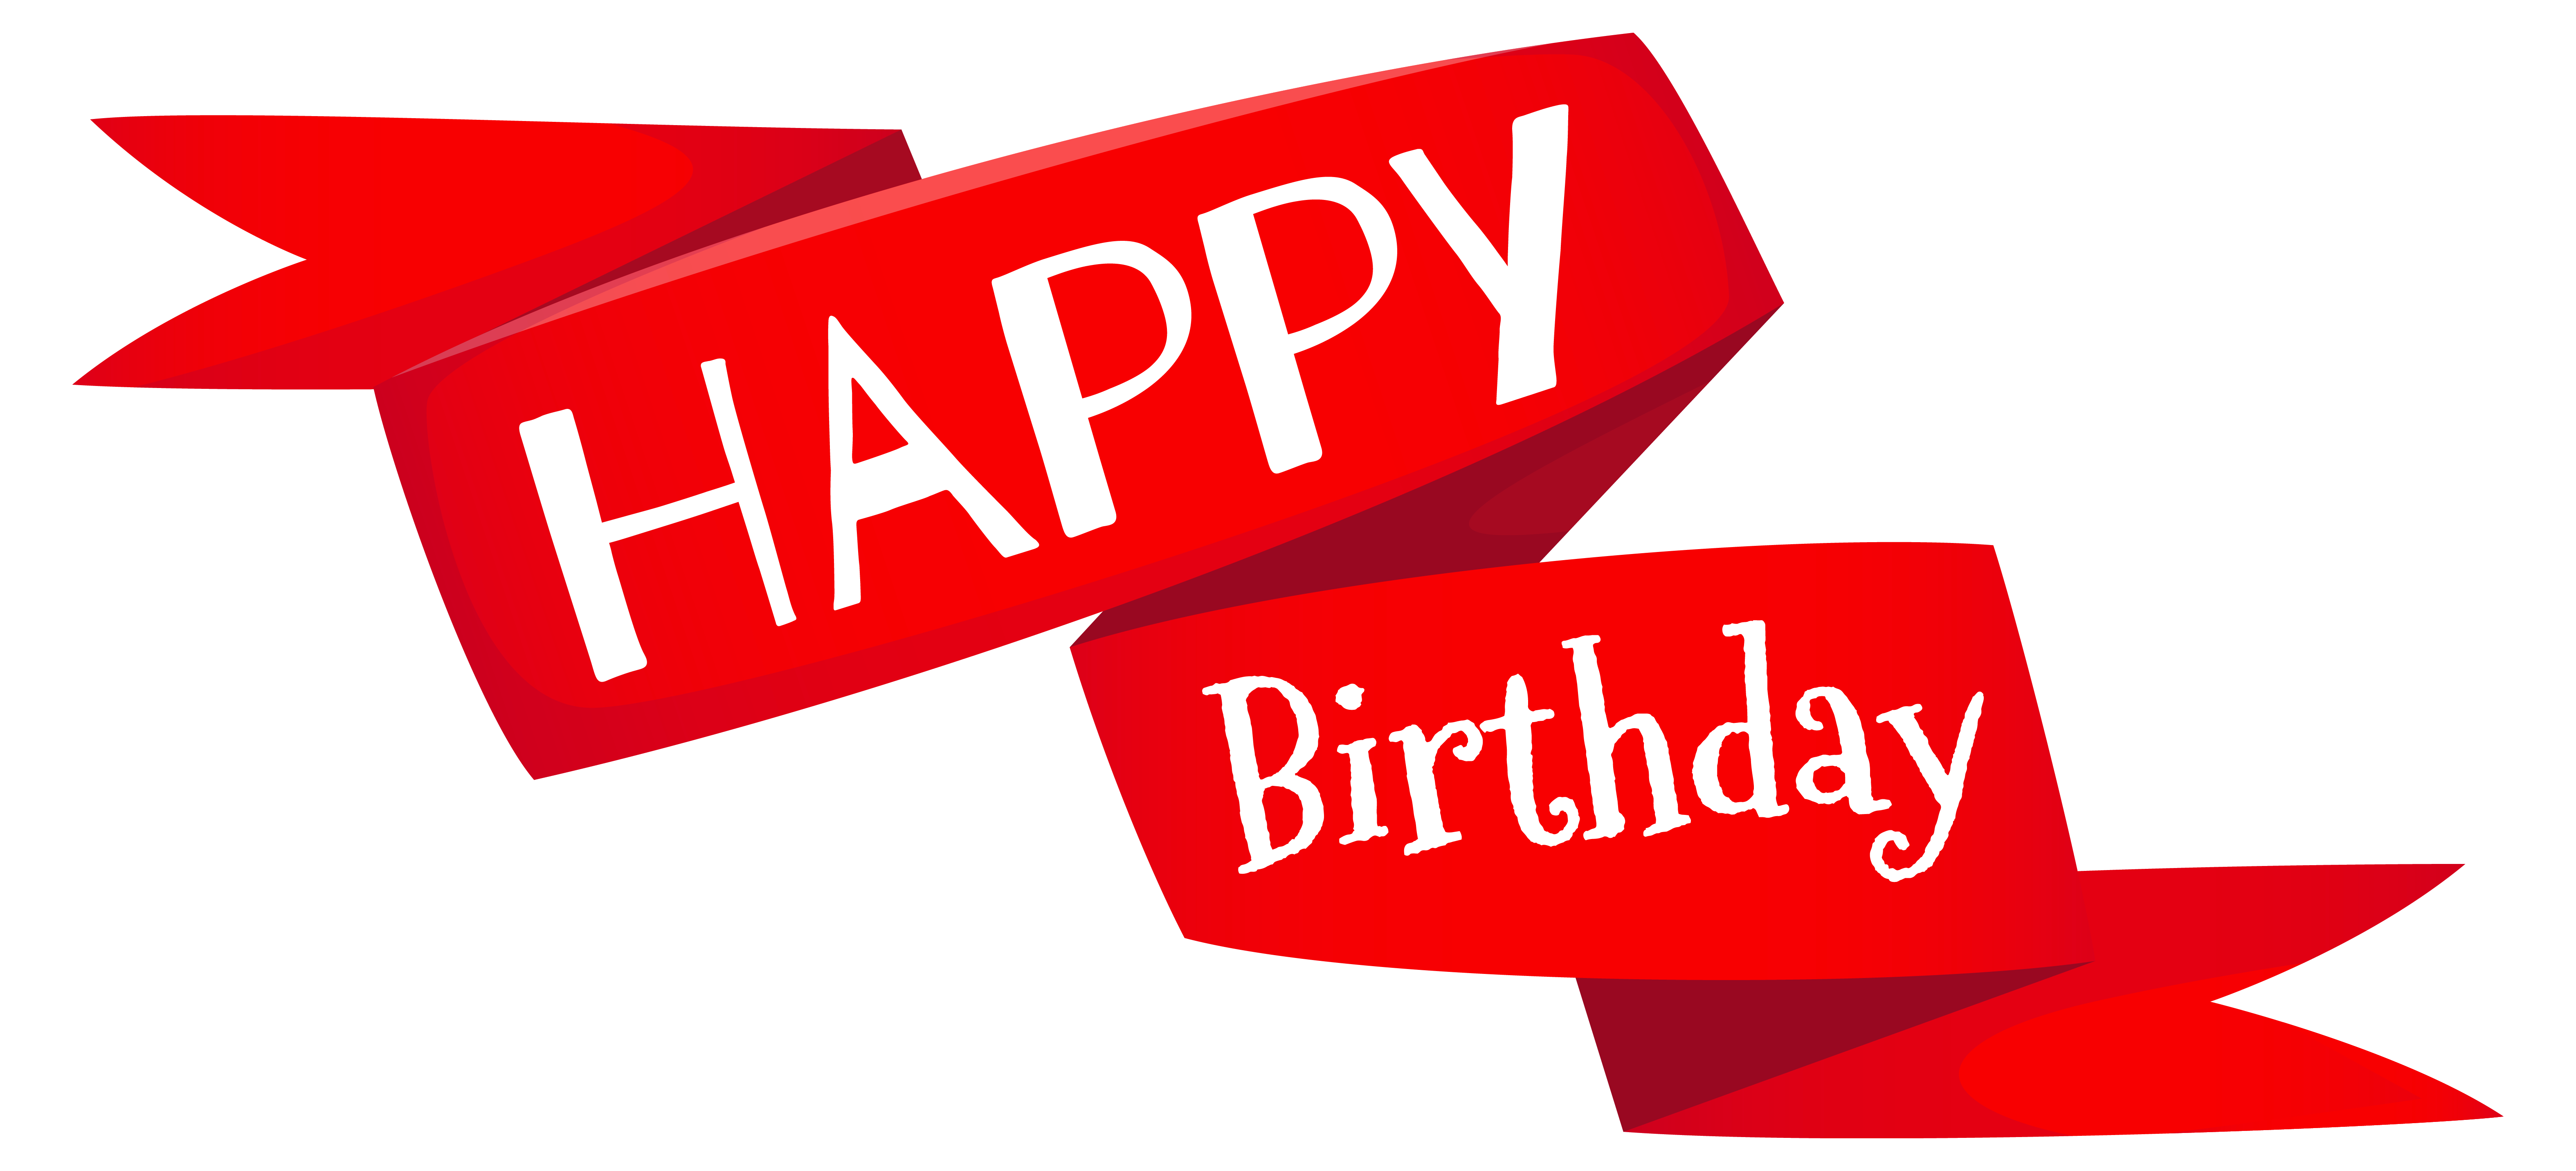 Happy birthday banner background png. Red image gallery yopriceville